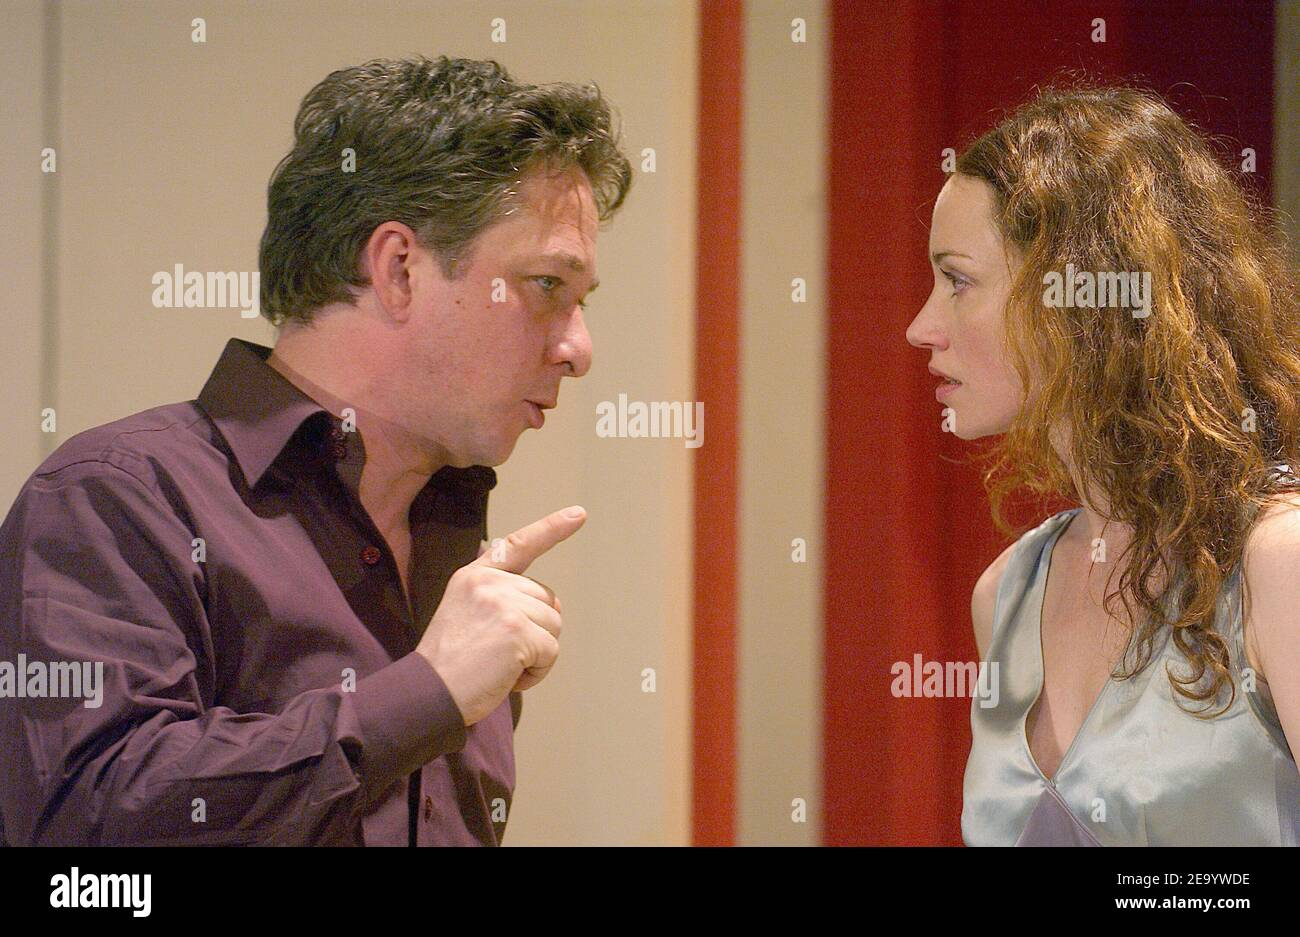 Marine Delterme and Nicolas Vaude perform in the play 'Le Manege' at Petit Theatre Montparnasse in Paris, France, on January 25, 2005. Photo by Giancarlo Gorassini/ABACA. Stock Photo